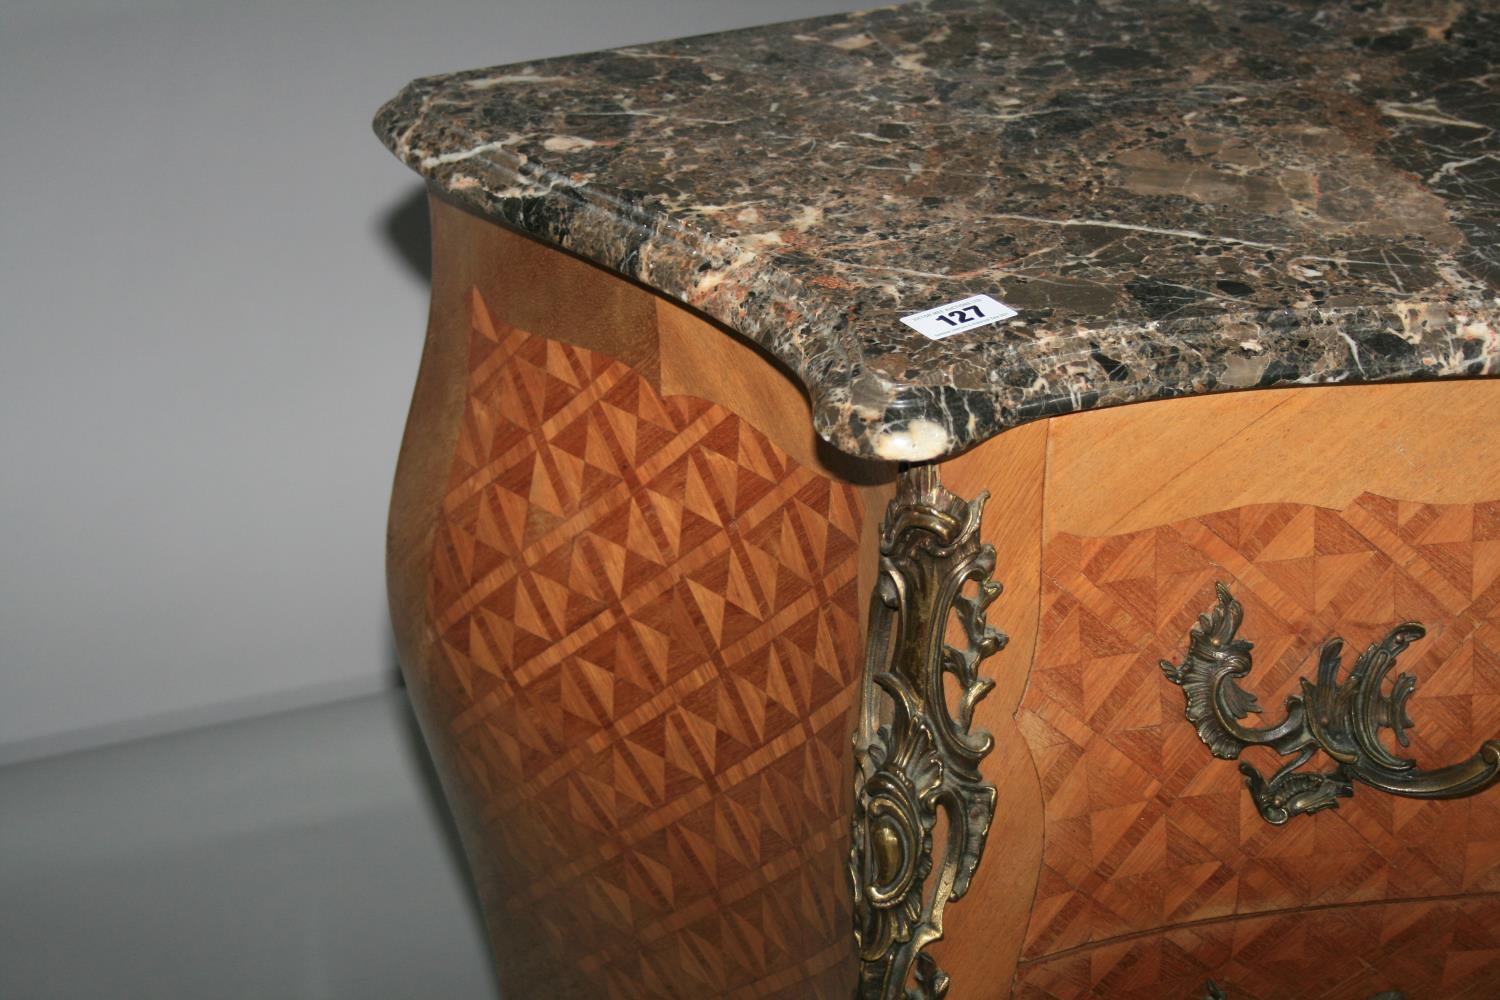 Fine quality antique serpentine commode with marble top above kingwood marquetry base with brass - Image 3 of 3